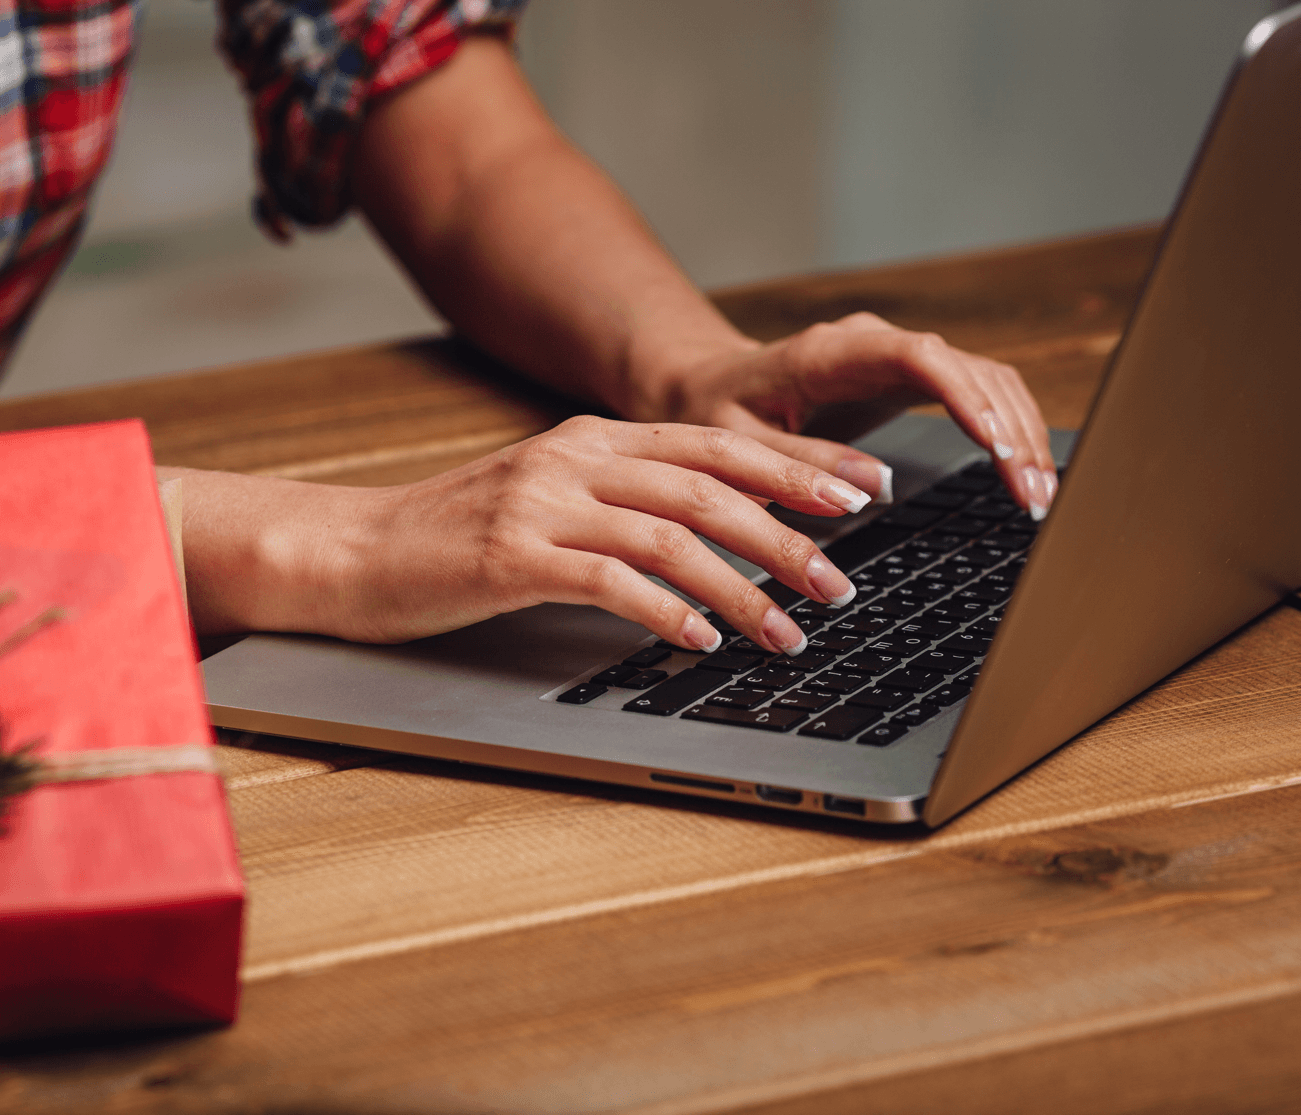 Tips for Christmas Shopping on a Budget Laptop image